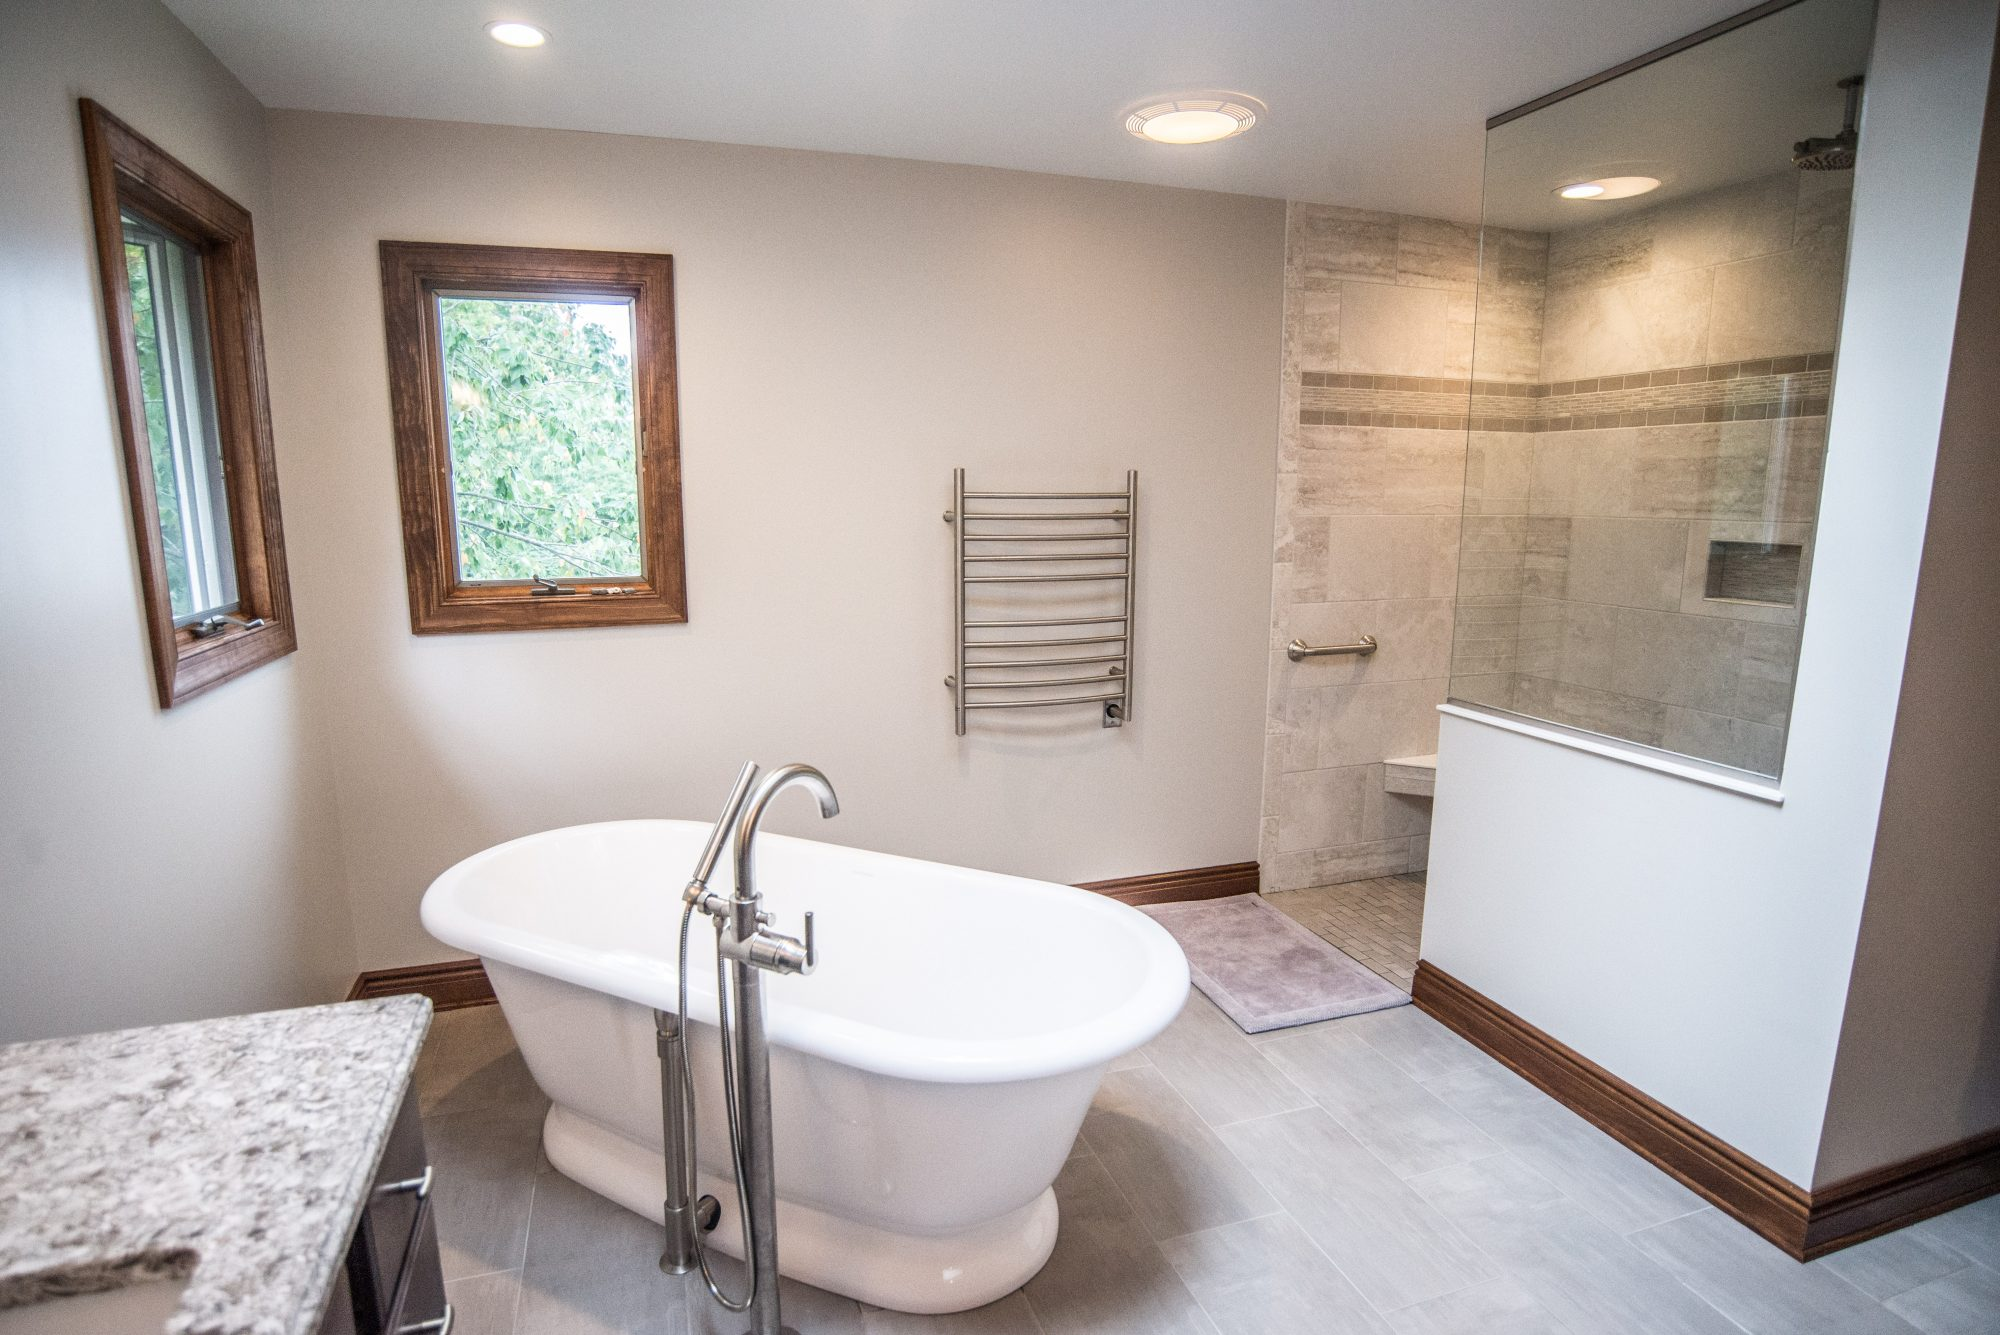 Bathroom Remodel Buffalo NY | Bathroom Remodeling Contractor